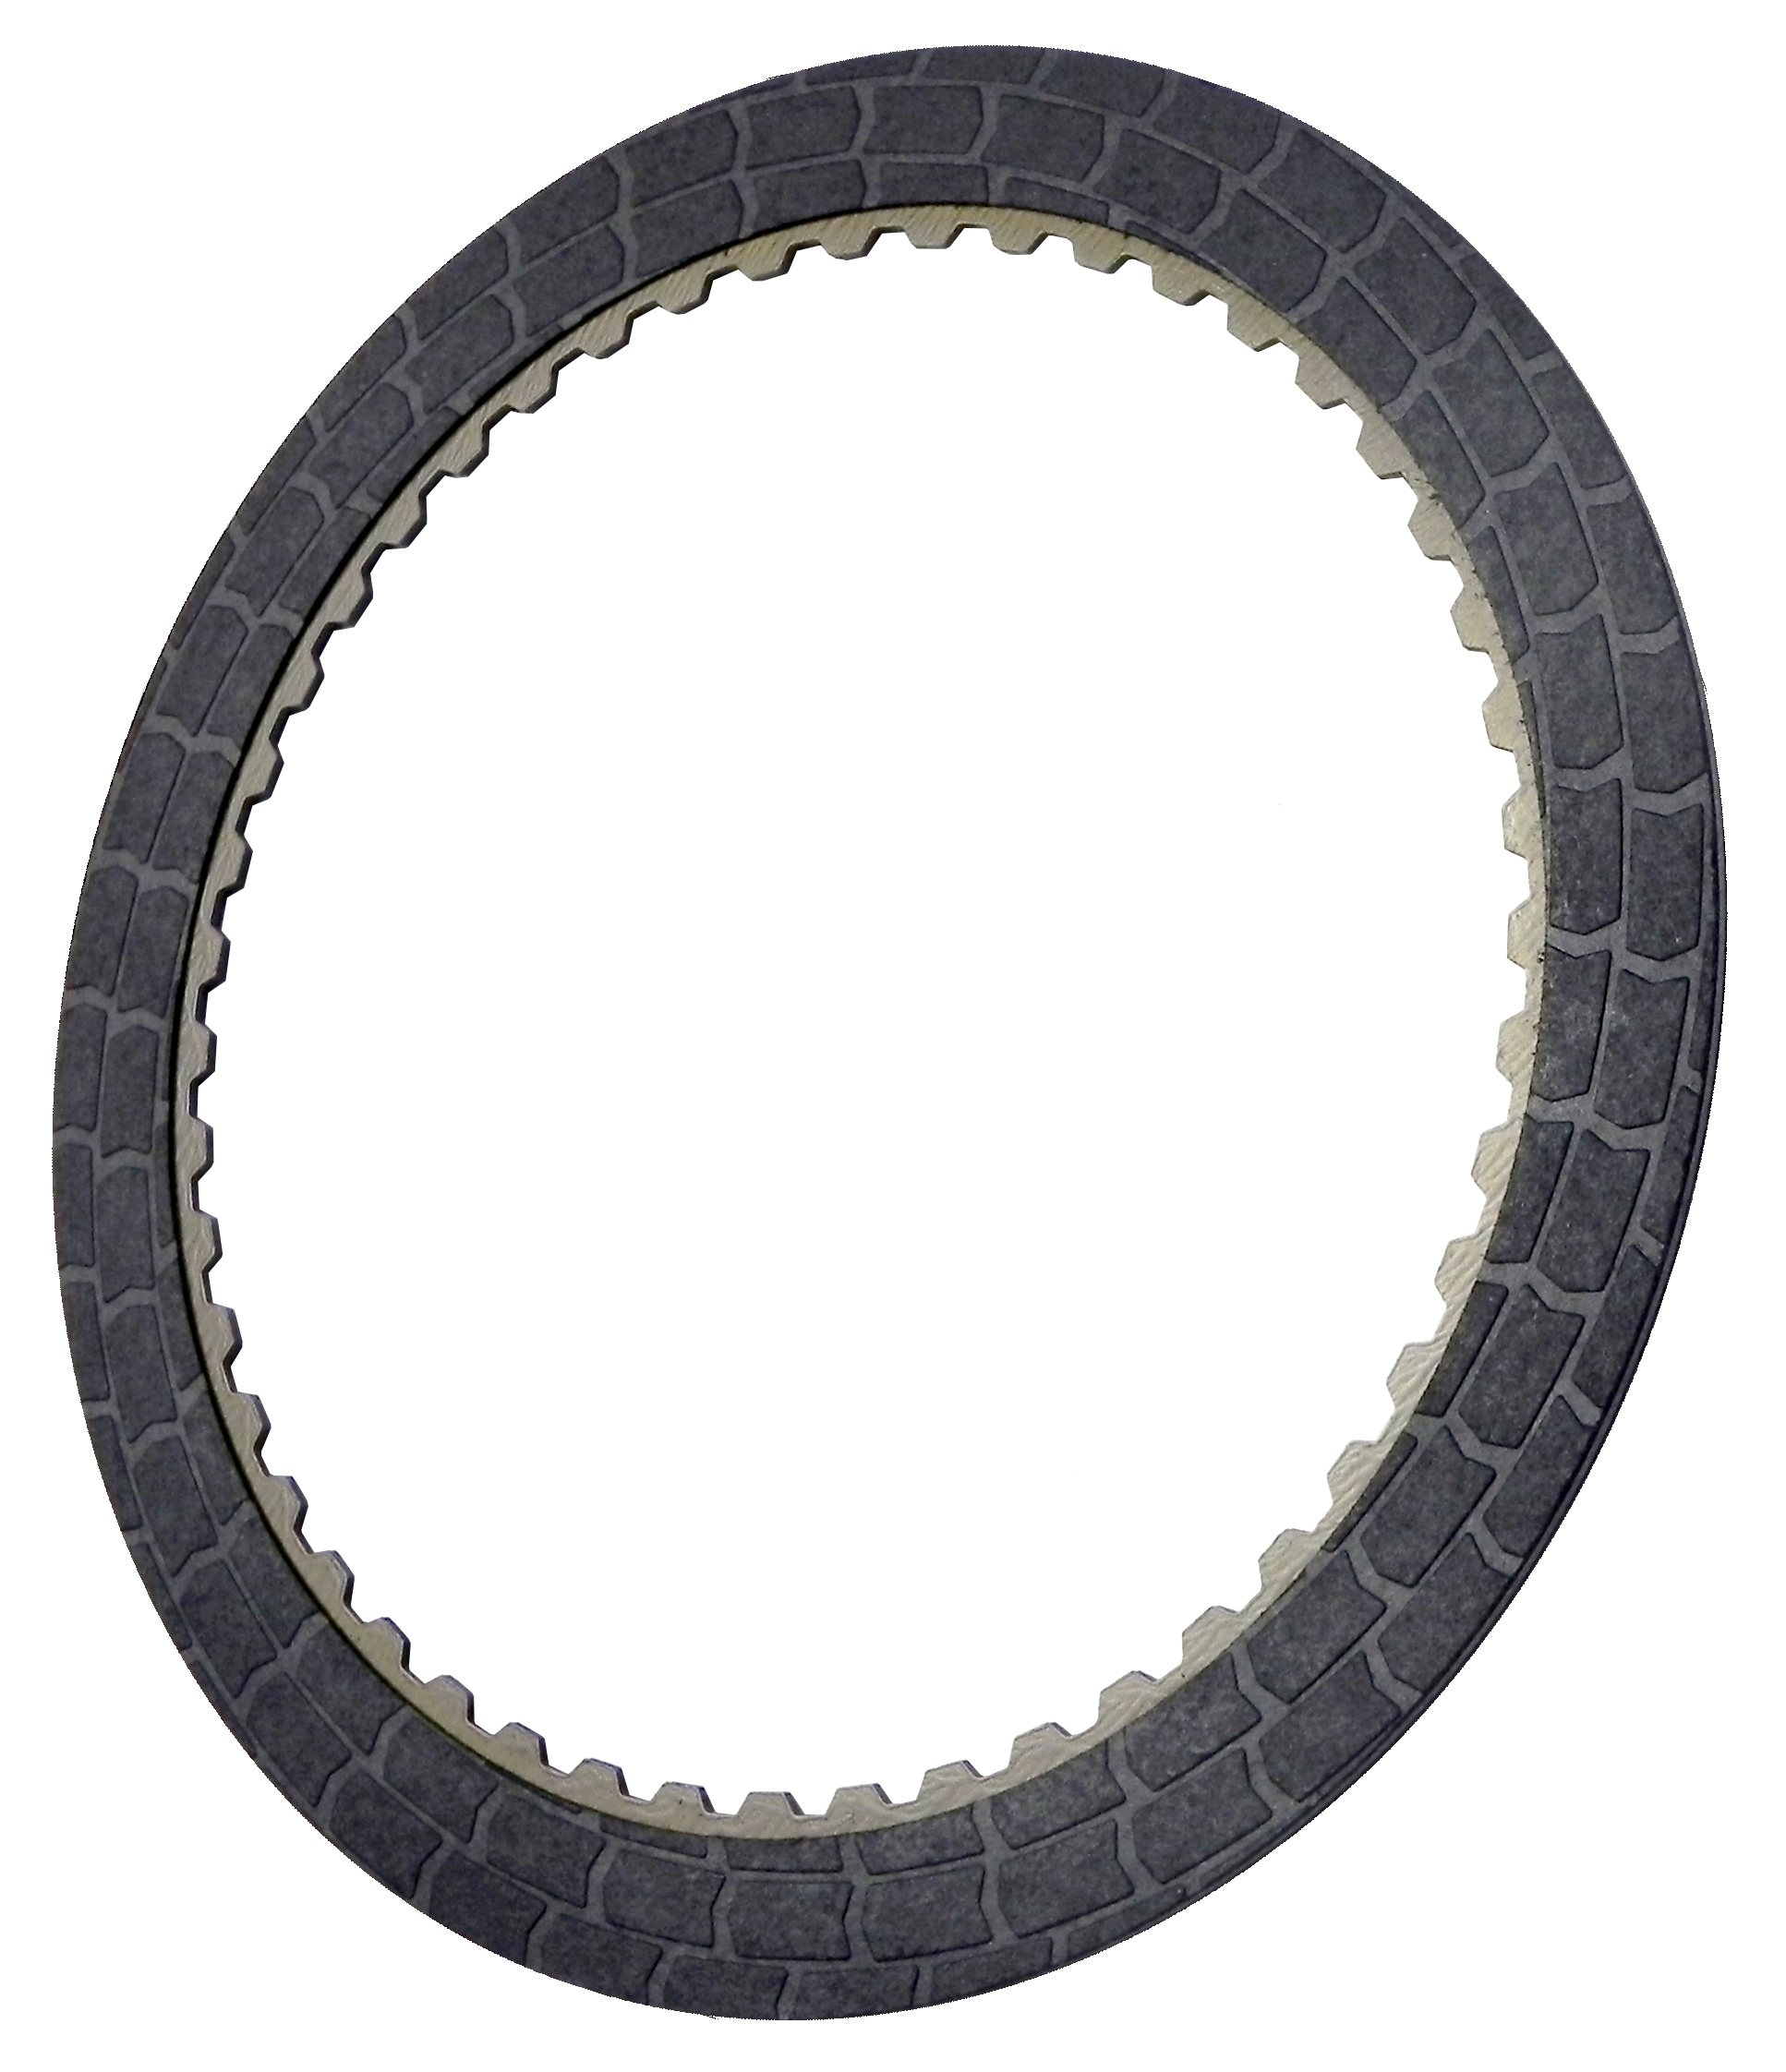 RH560000 | 1997-ON Friction Clutch Plate (HT) Hybrid Technology High Reverse Proprietary High Energy (HT)